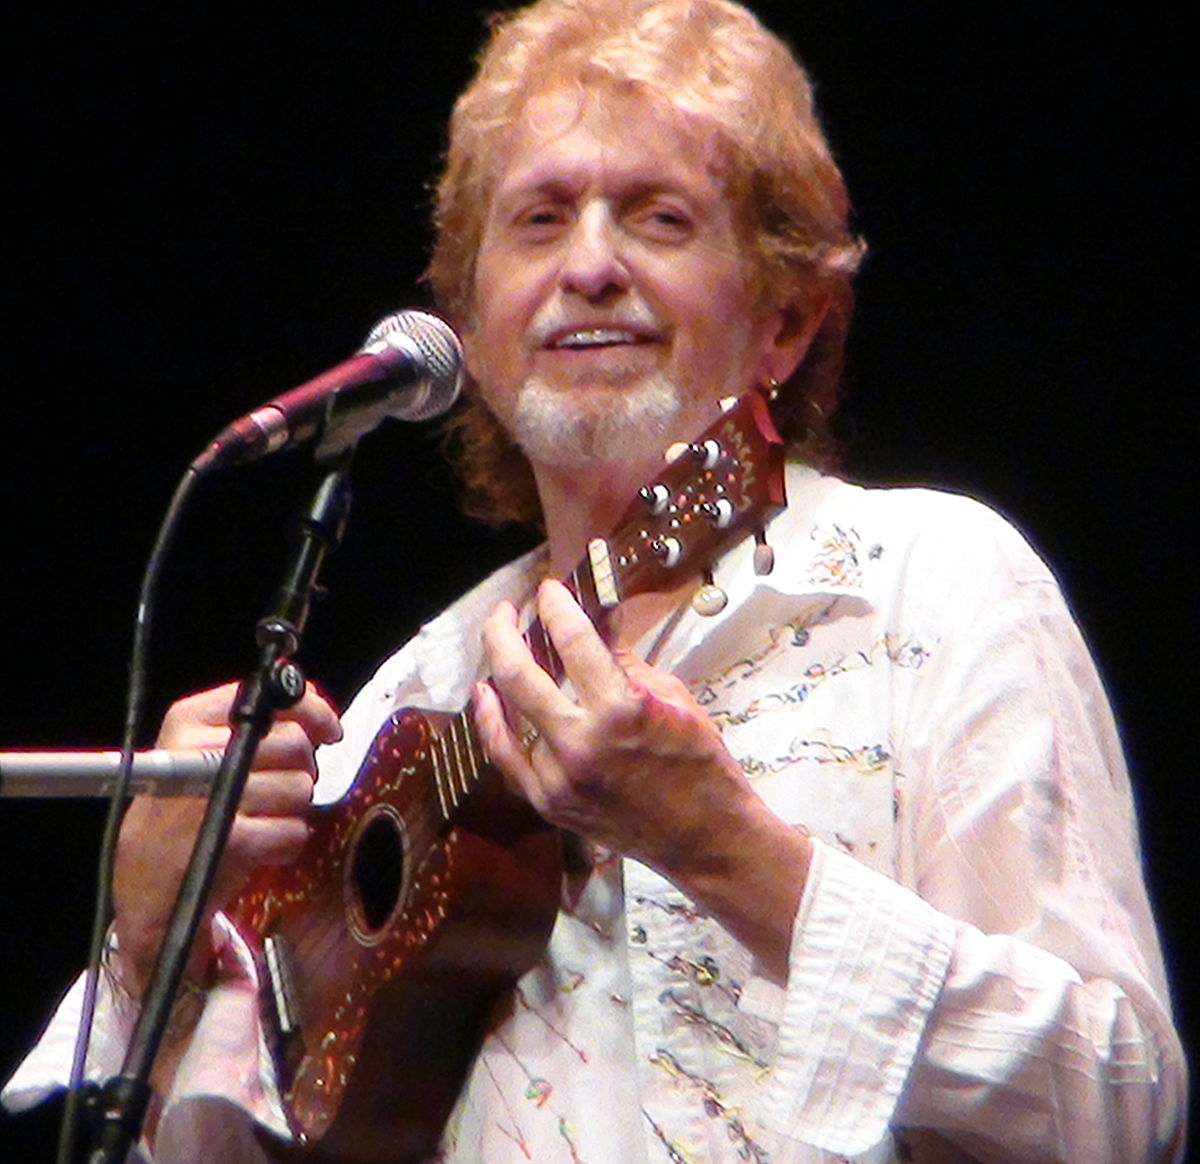 Jon Anderson Tour  Oct  Set List